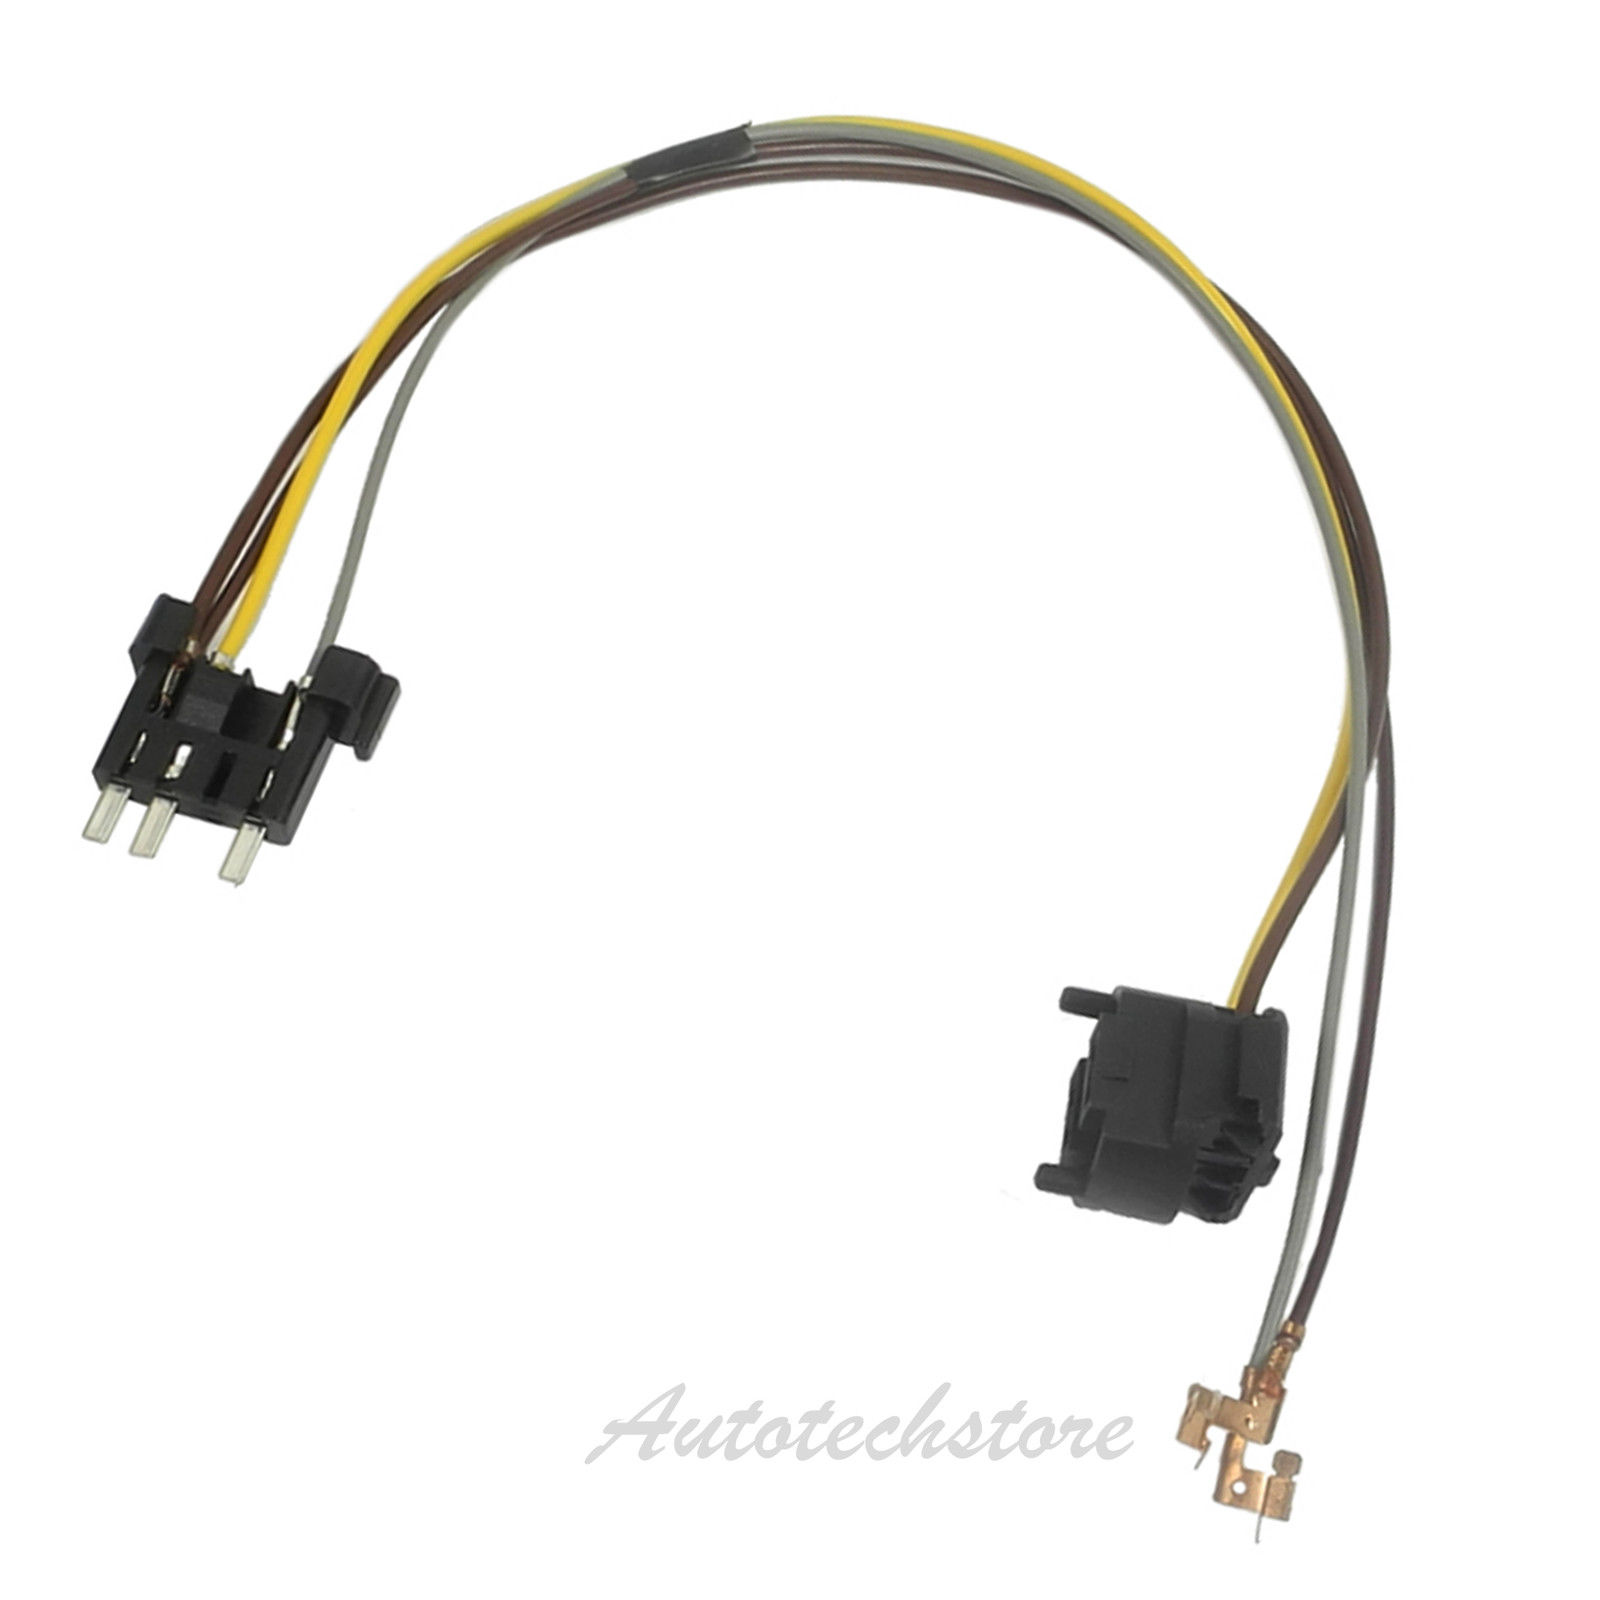 Details about Right Headlight Wiring Harness Repair For W211 E280 E300 on bucket truck harness, heavy duty headlight harness, headlight bracket, headlight relay harness, headlight connectors,